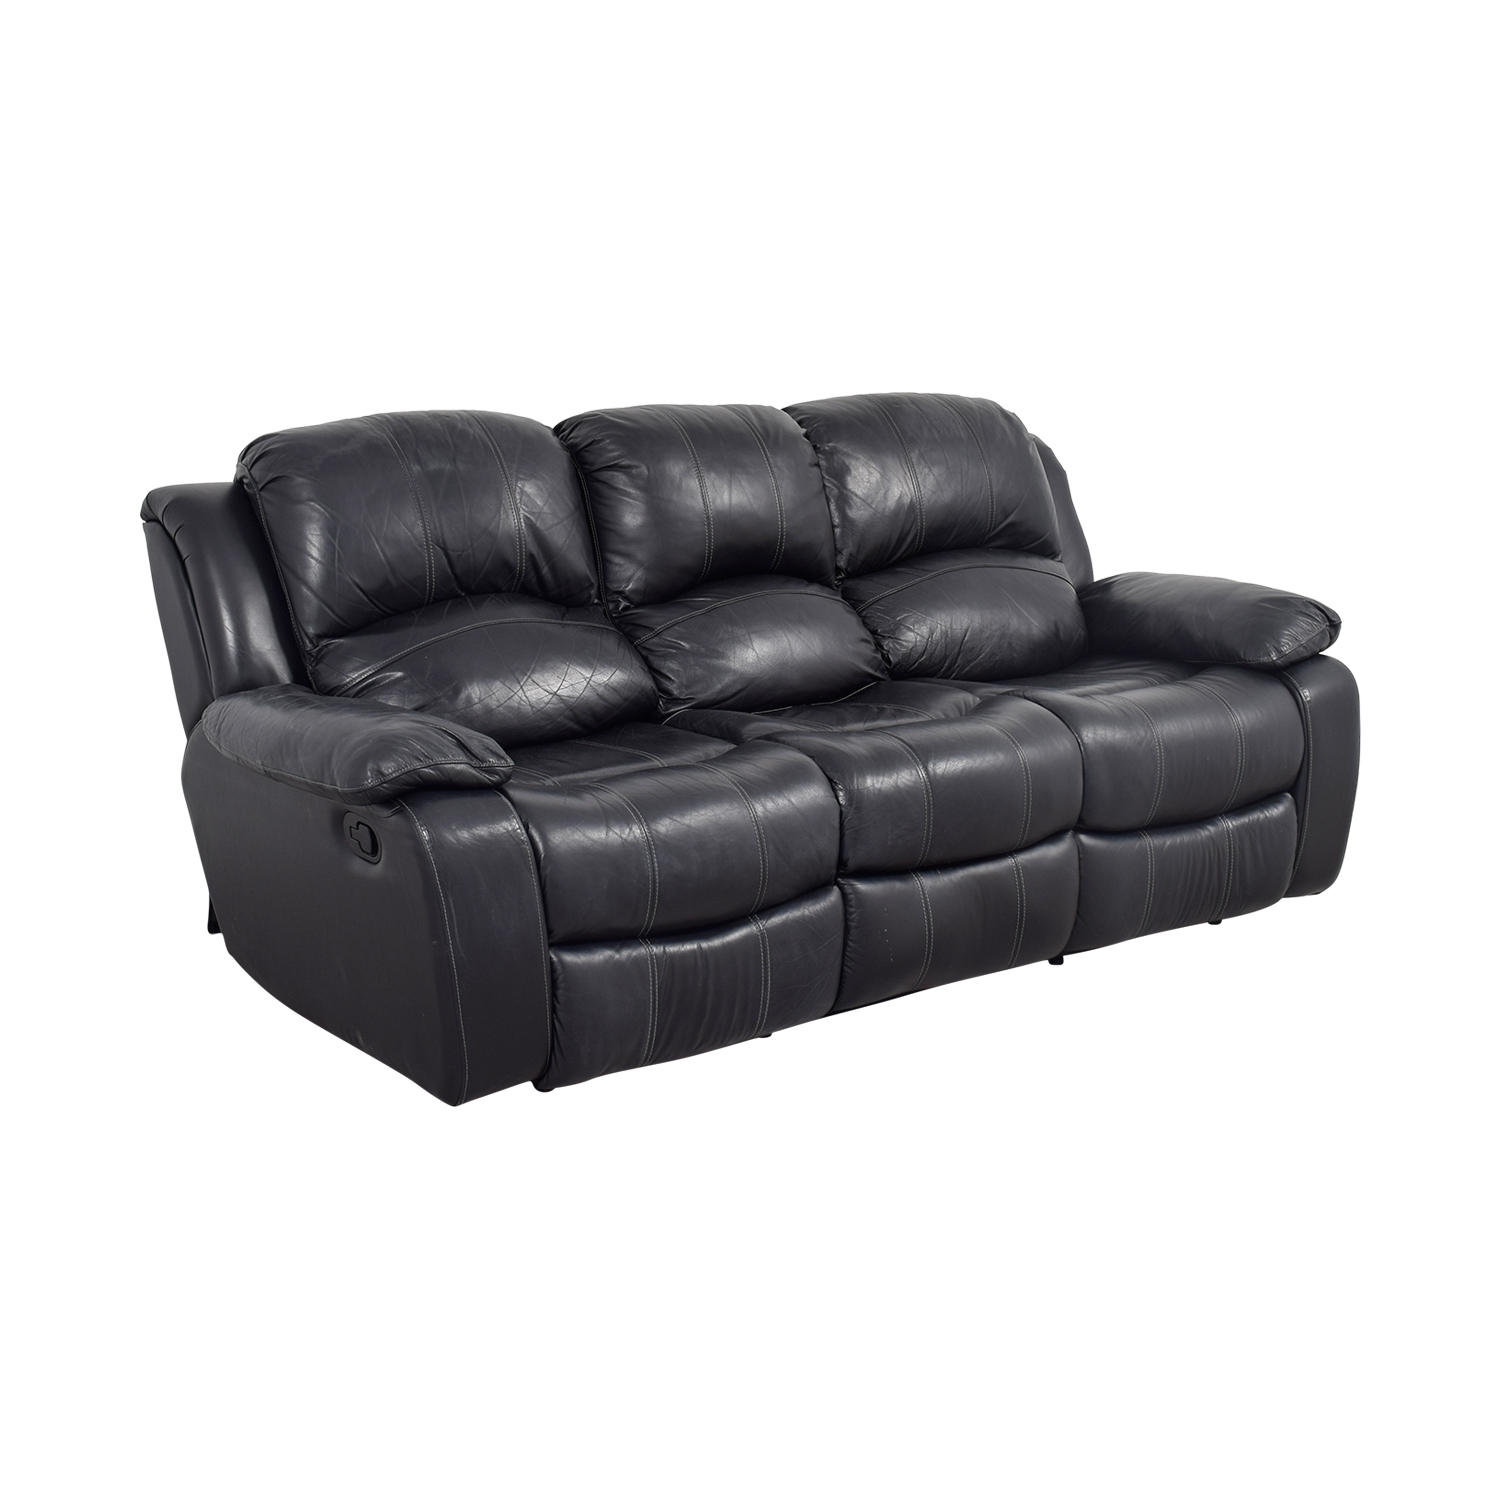 second hand leather sofa for sale best recliner uk 70 off black reclining sofas